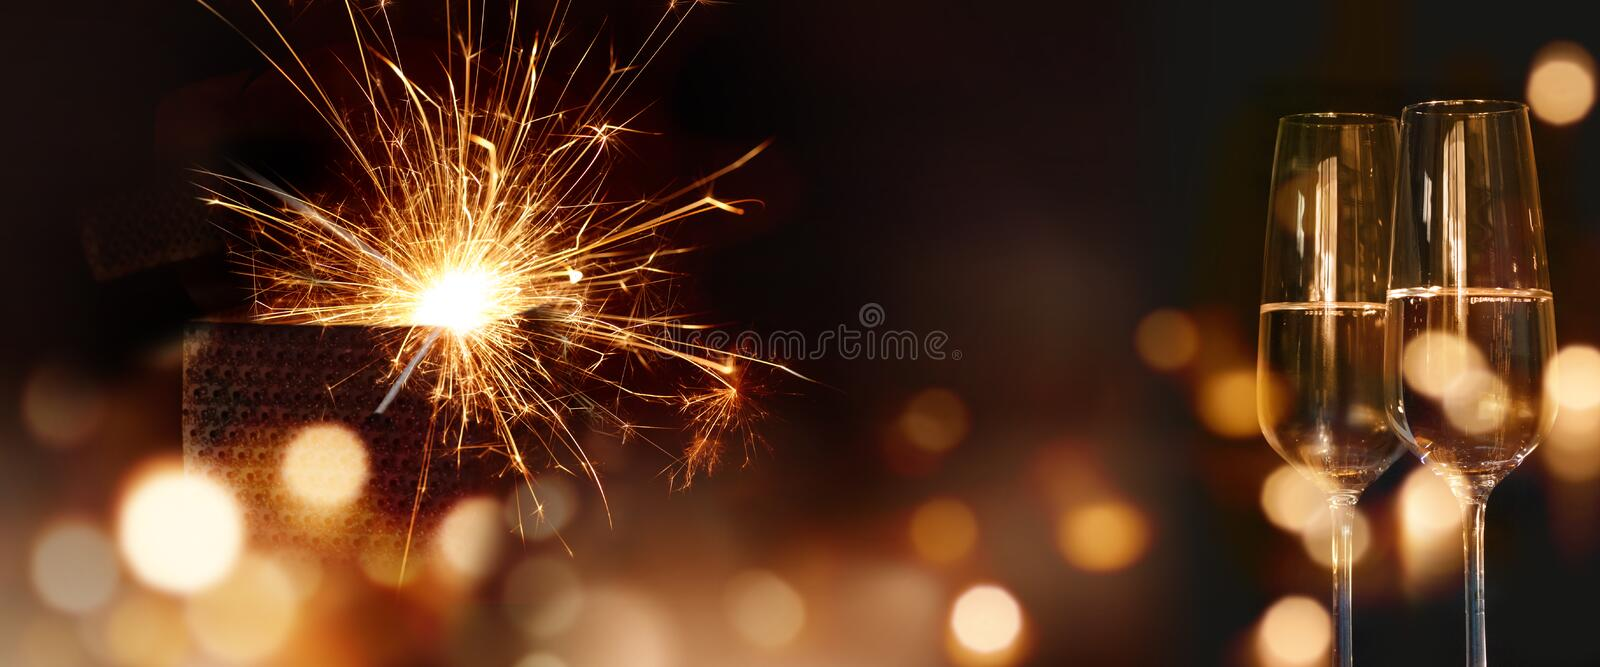 Sparkling new year wishes stock photos